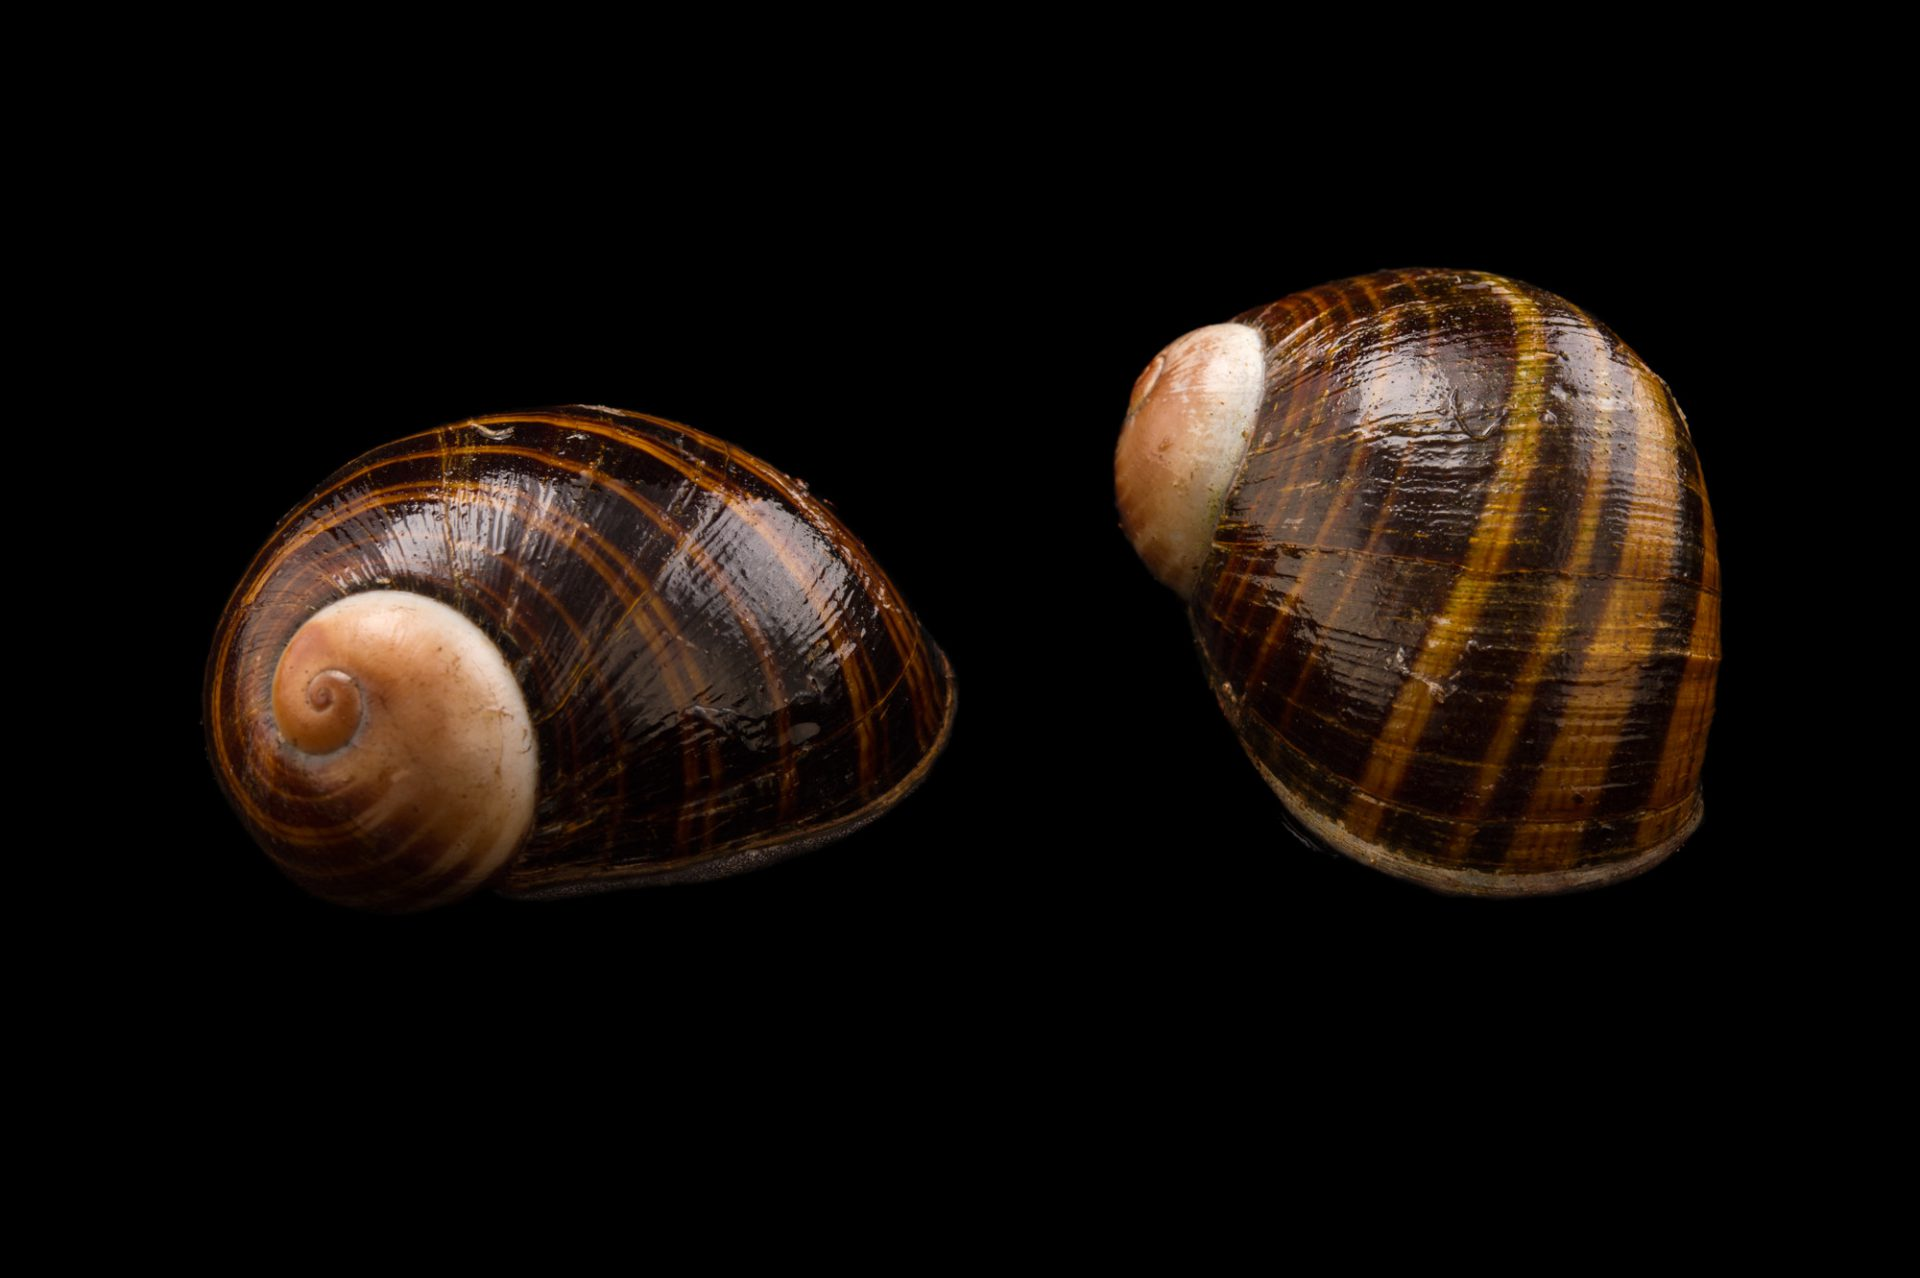 Photo: Madagascar land snails (Helicophanta bicingulata) at the Plzen Zoo in the Czech Republic.